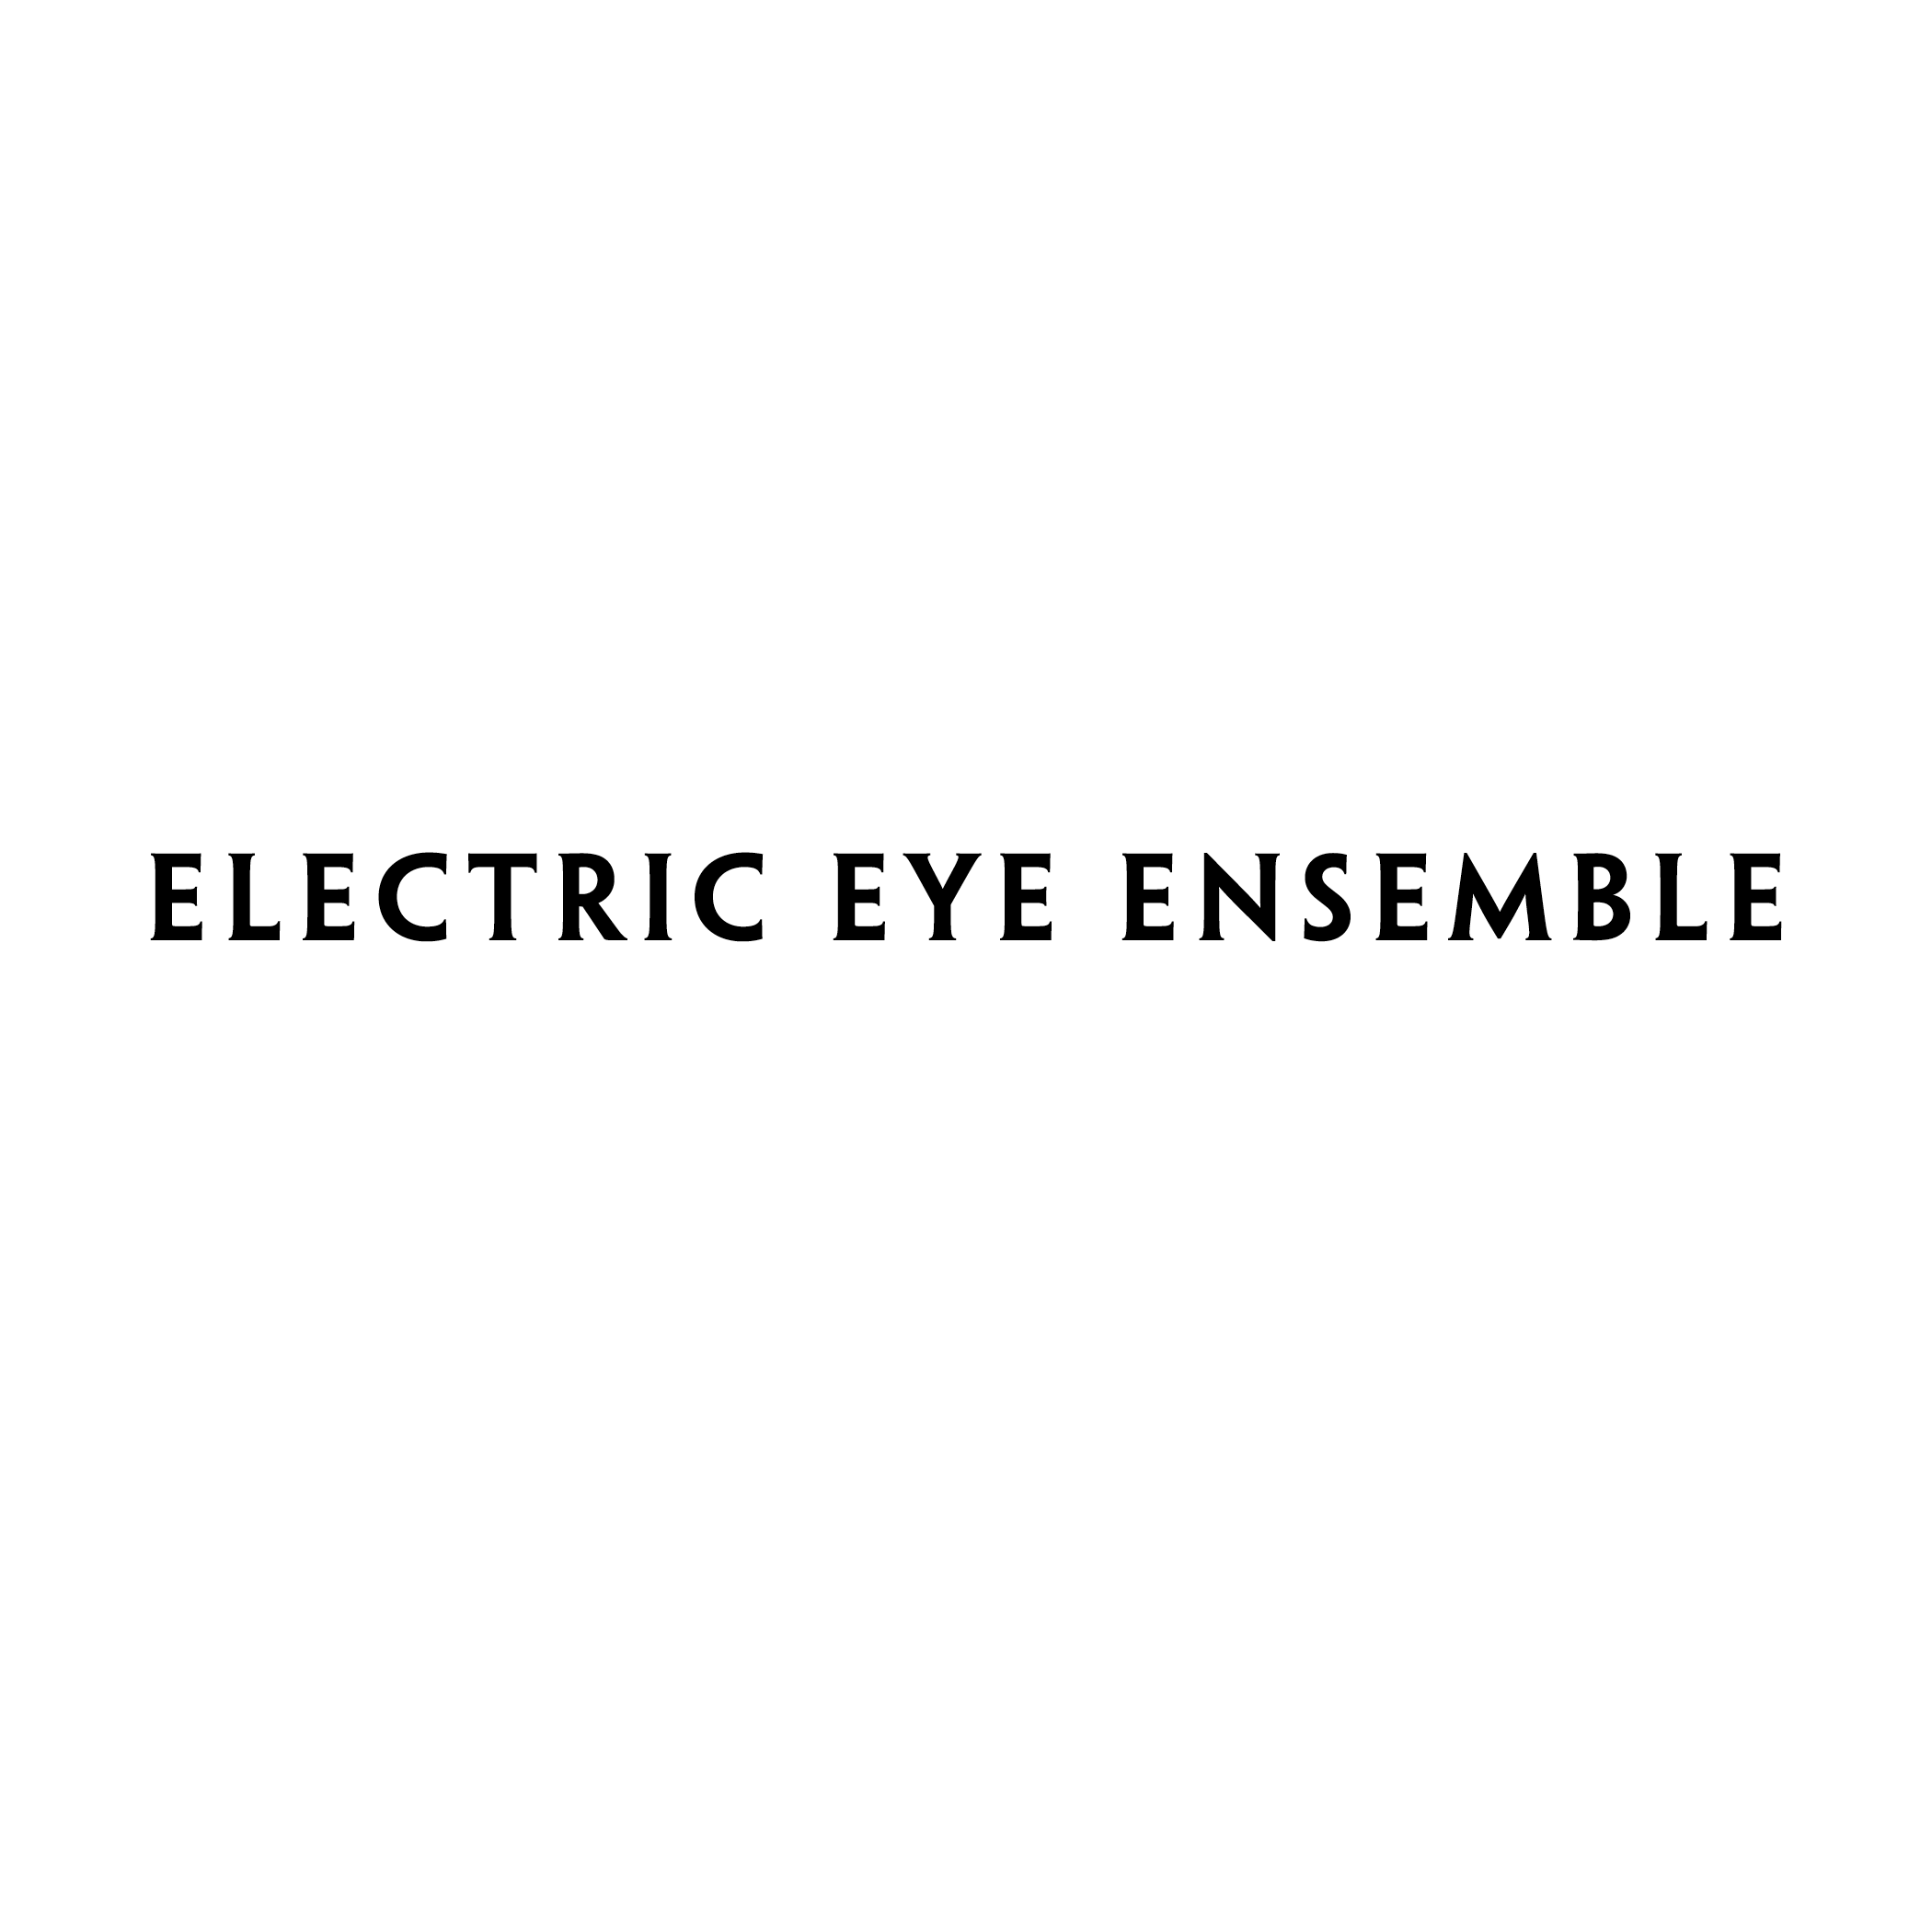 eee_company_identity_10.png